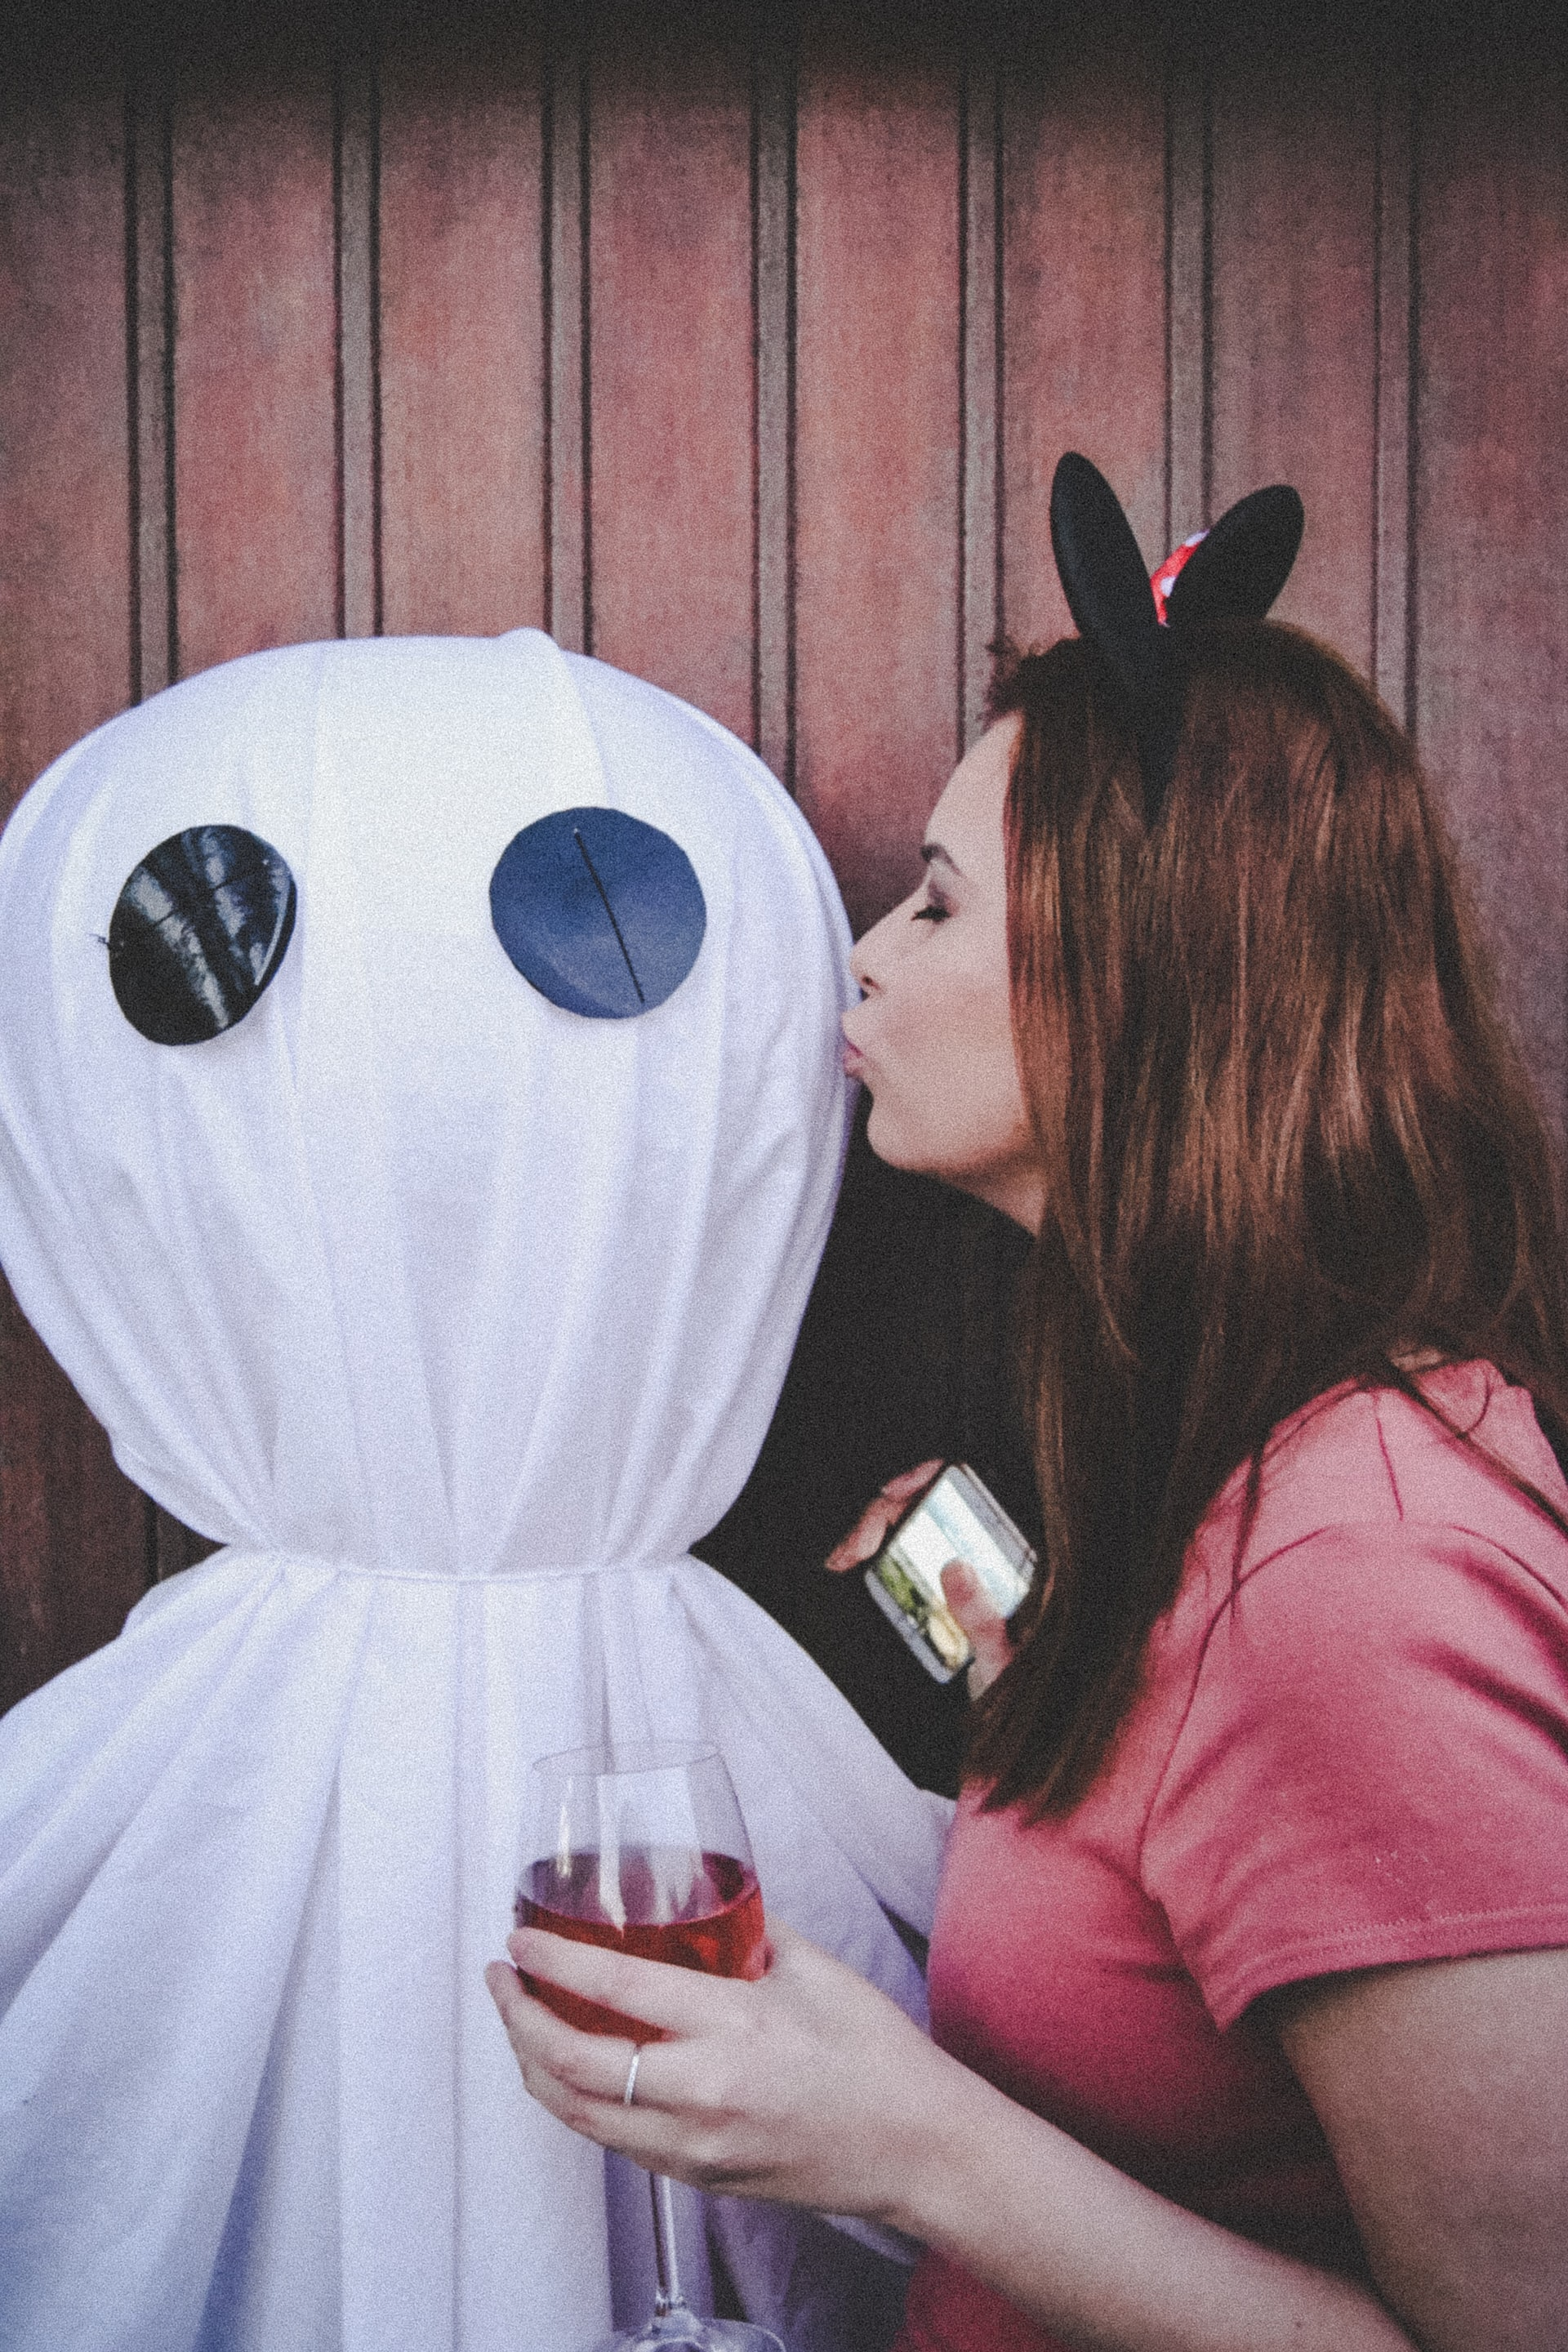 A photo of someone kissing a stuffed ghost on the cheek, assuming ghosts actually have cheeks.